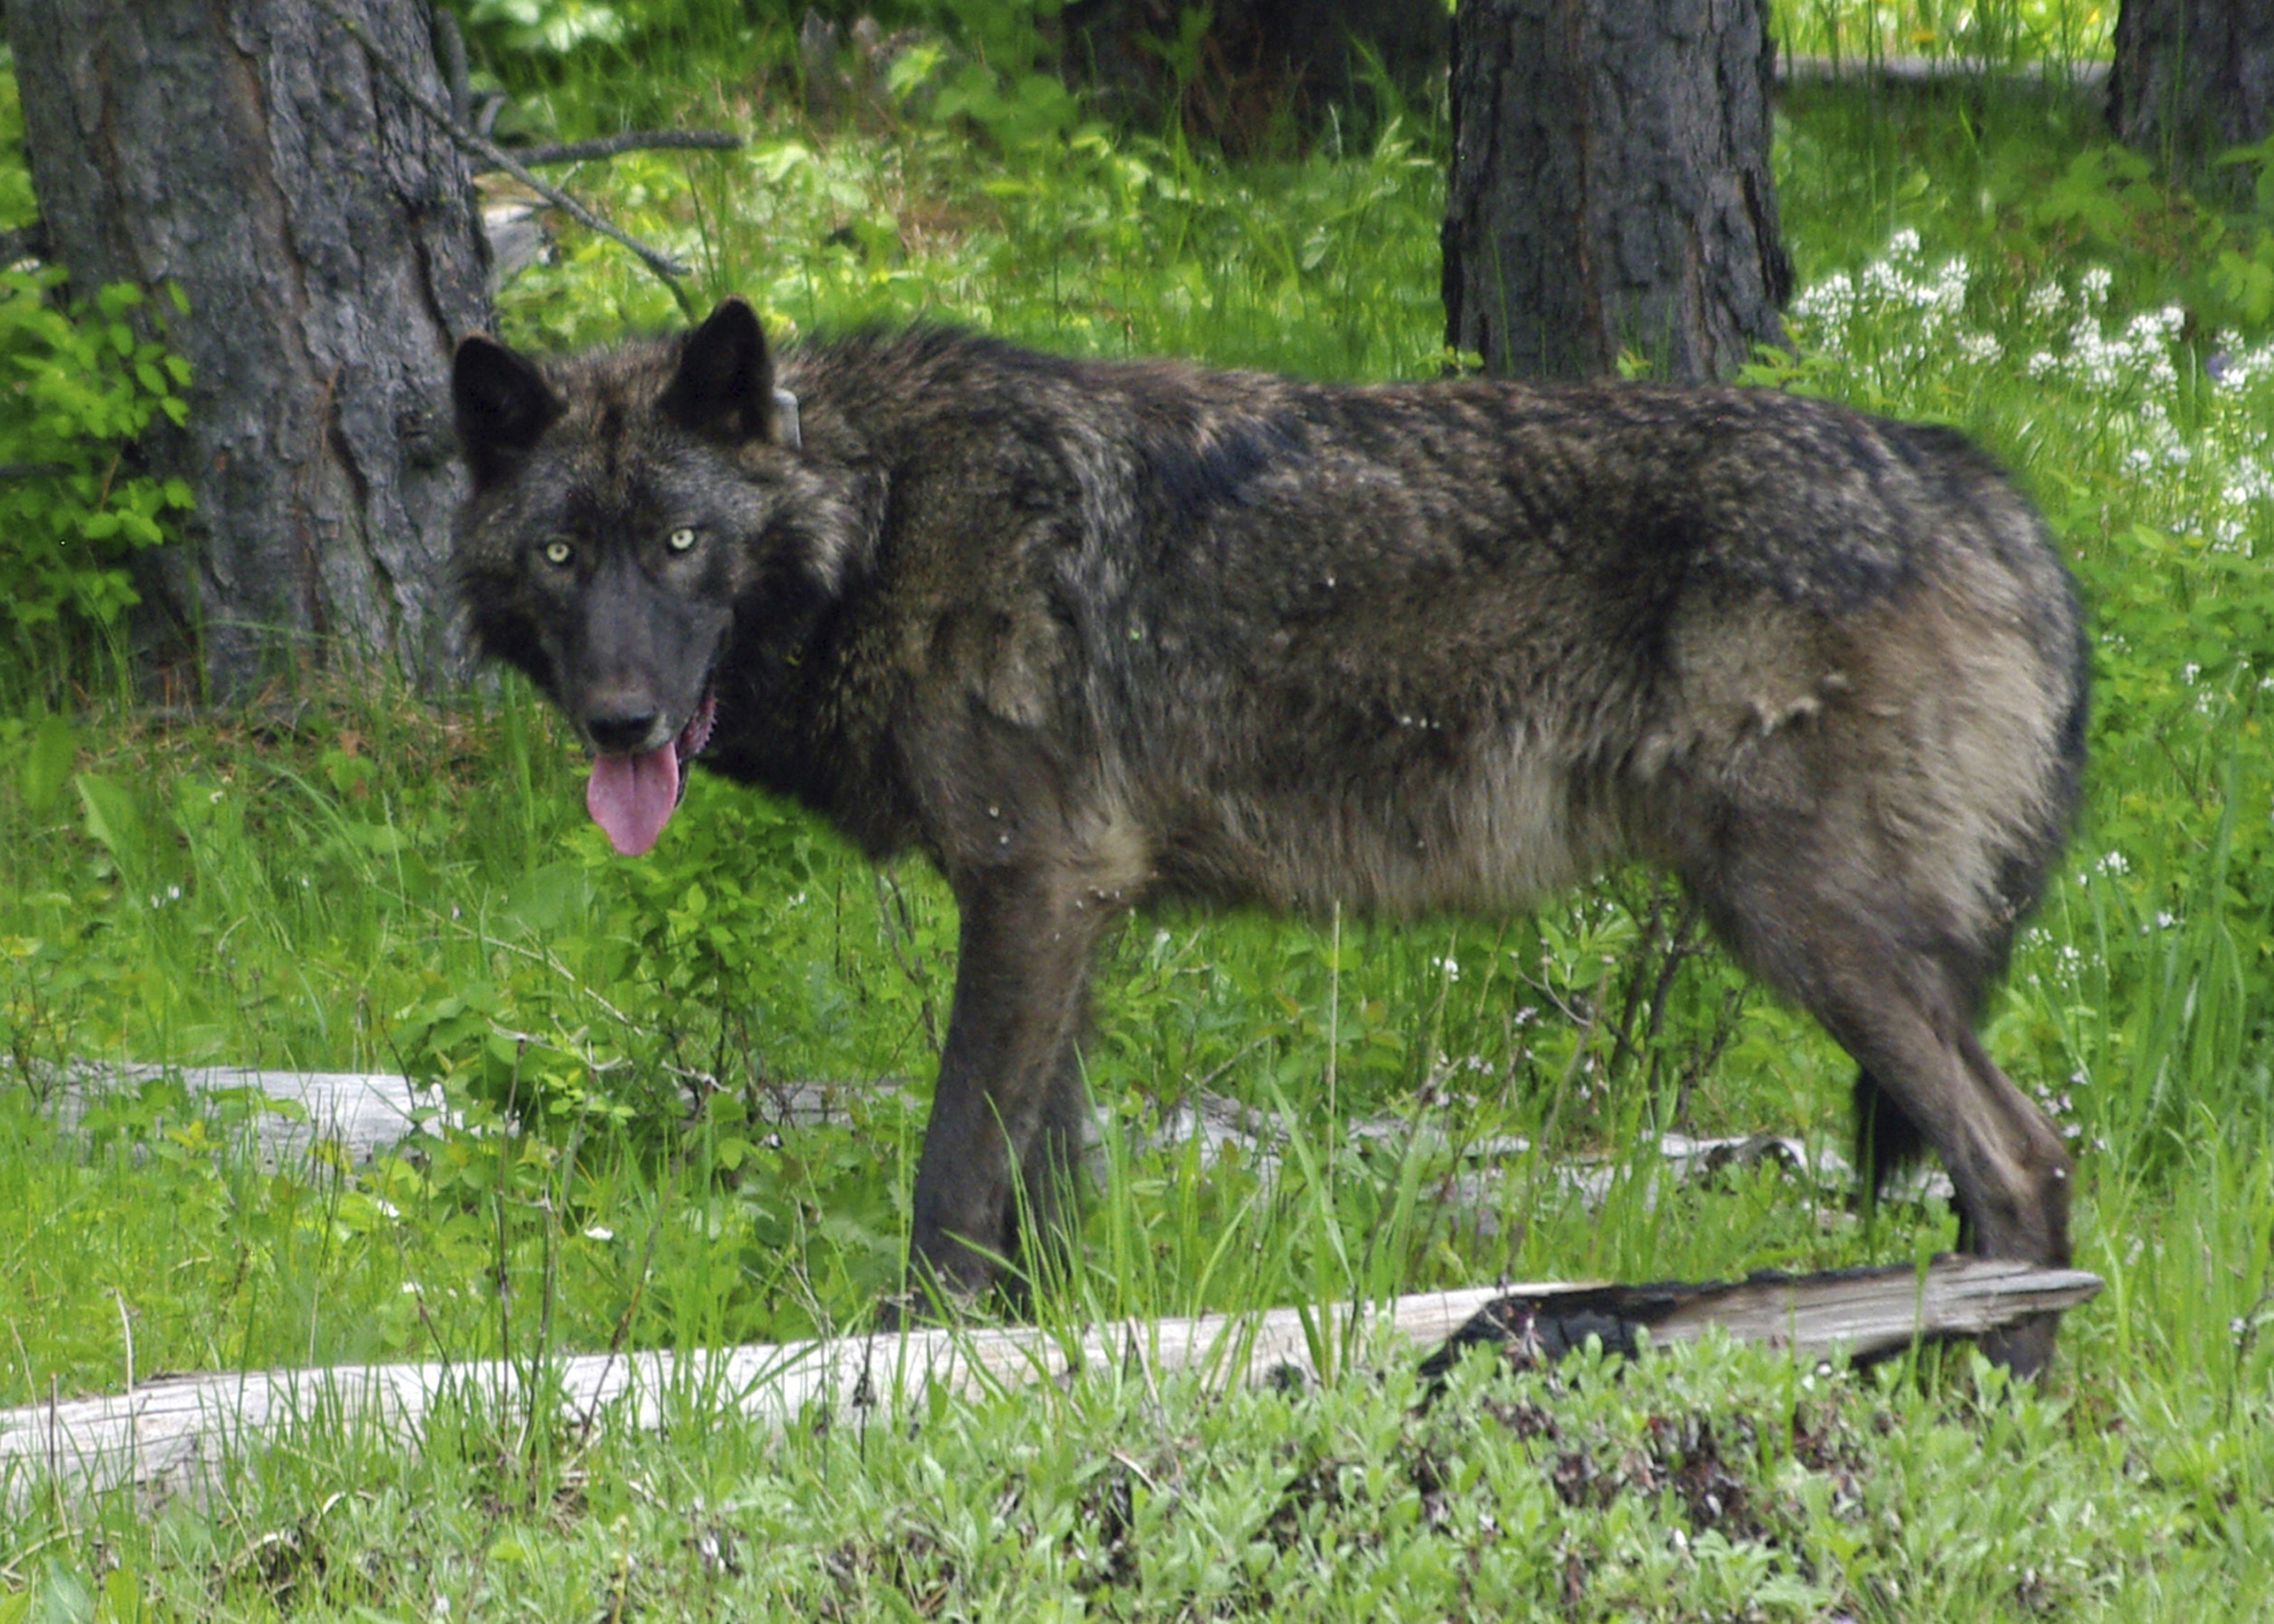 In this May 25, 2014 photo provided by the Oregon Department of Fish and Wildlife, a 100-pound adult male wolf is GPS radio-collared in the Mt. Emily Oregon Wildlife Management Unit in the Umatilla National Forest, Ore. (Oregon Department of Fish and Wildlife via AP)